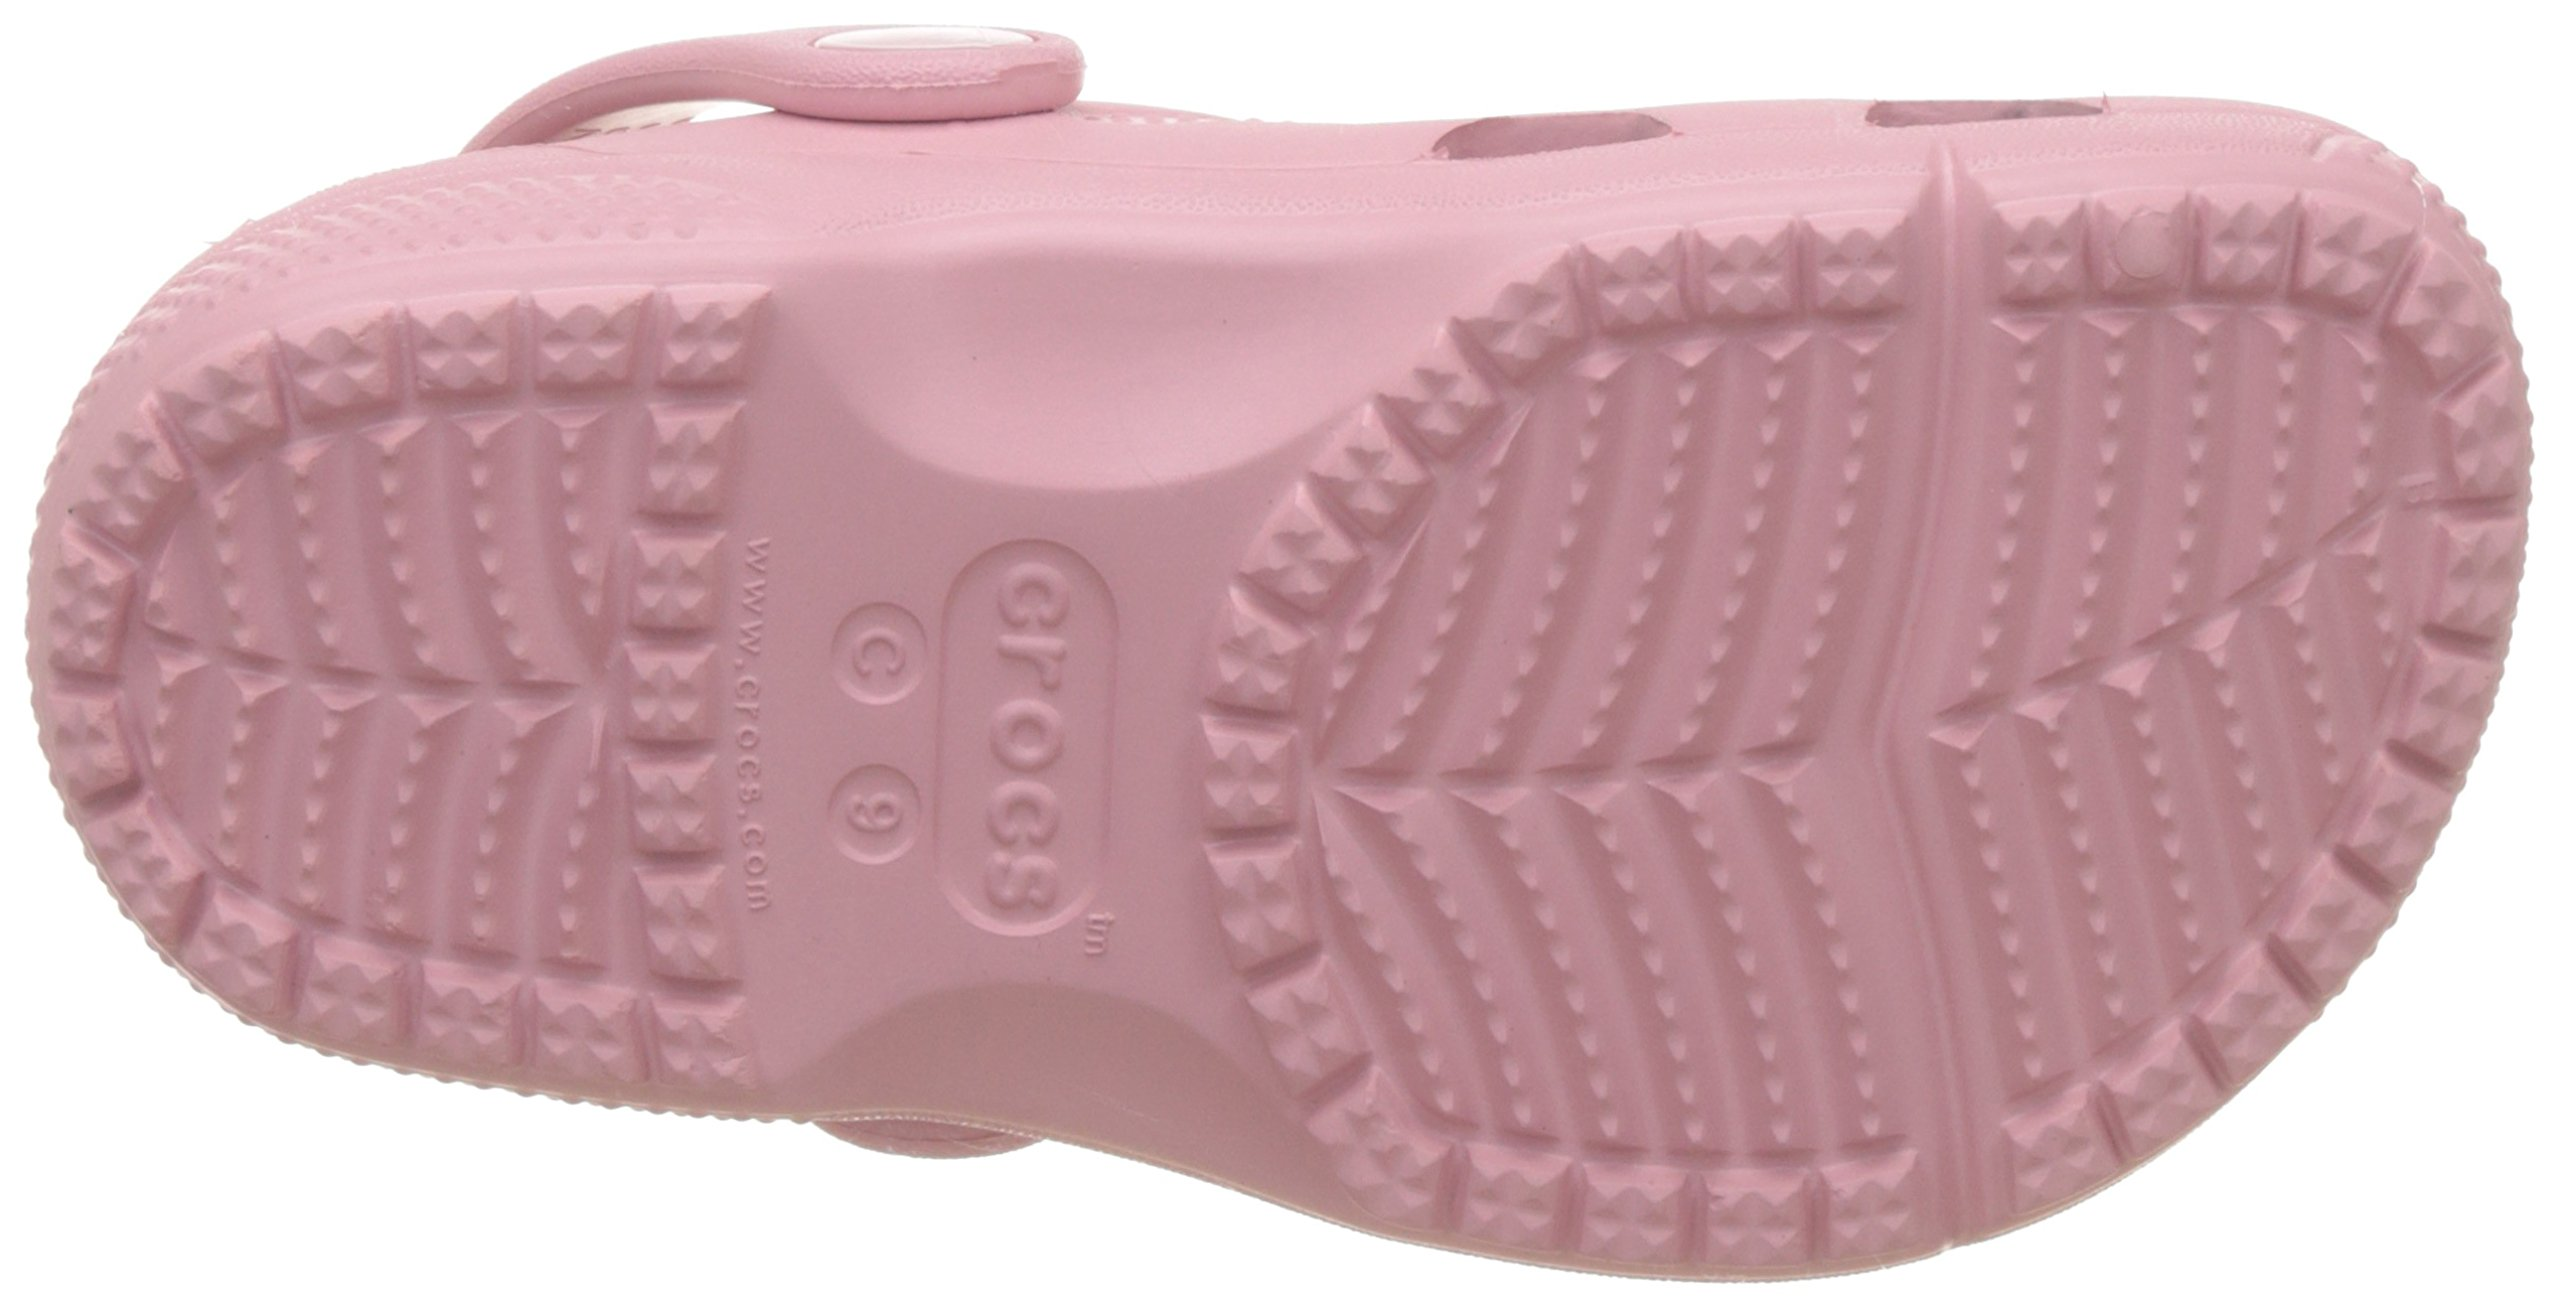 Crocs Kids Unisex Coast Clog (Toddler/Little Kid) Petal Pink 11 M US Little Kid by Crocs (Image #3)